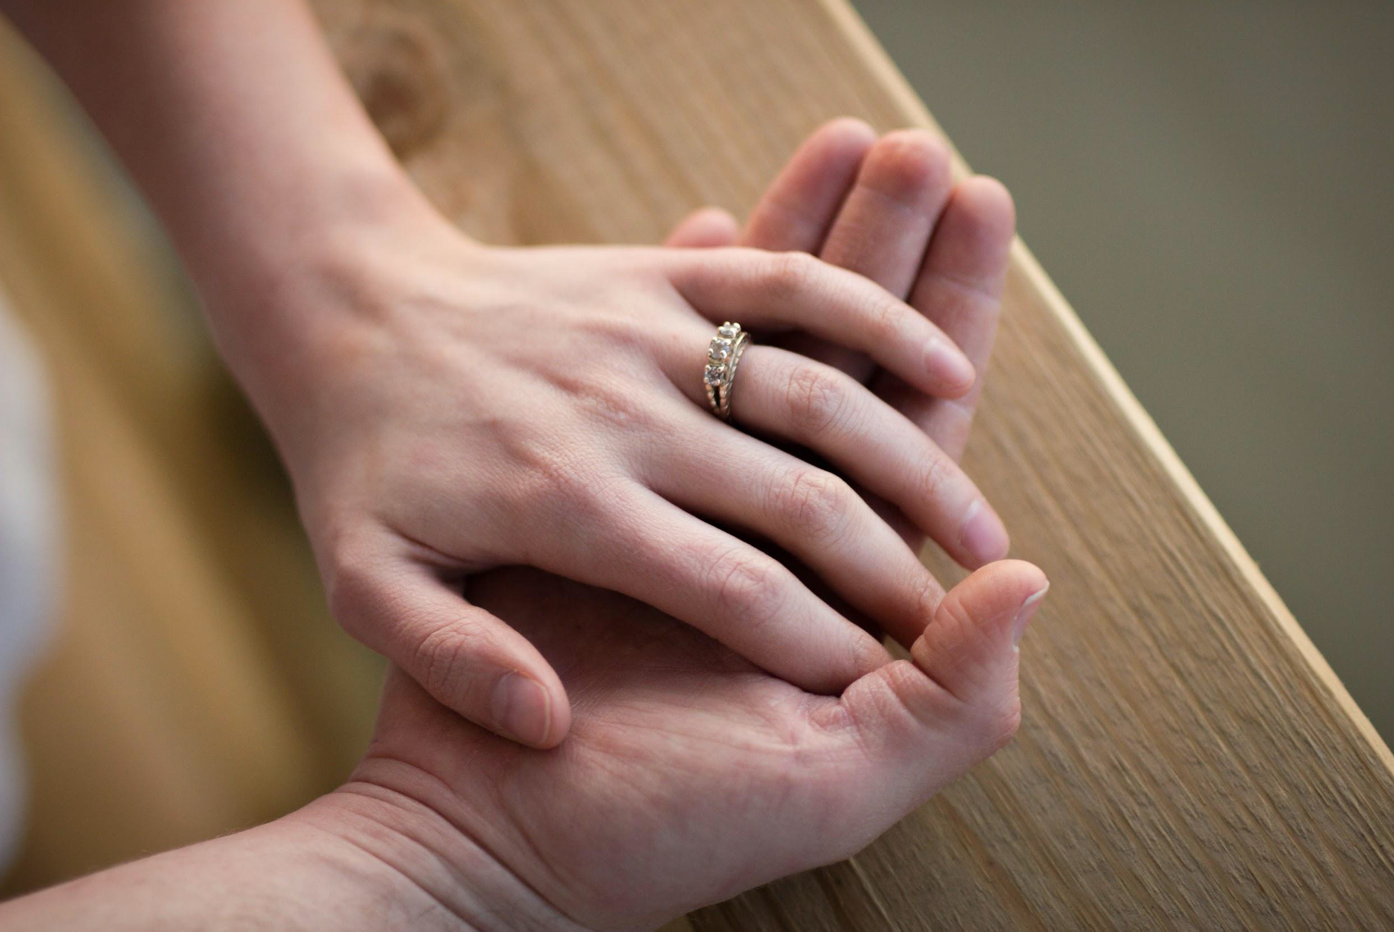 Man and woman wearing wedding ring holding hands; image by Rachel Crowe, via Unsplash.com.